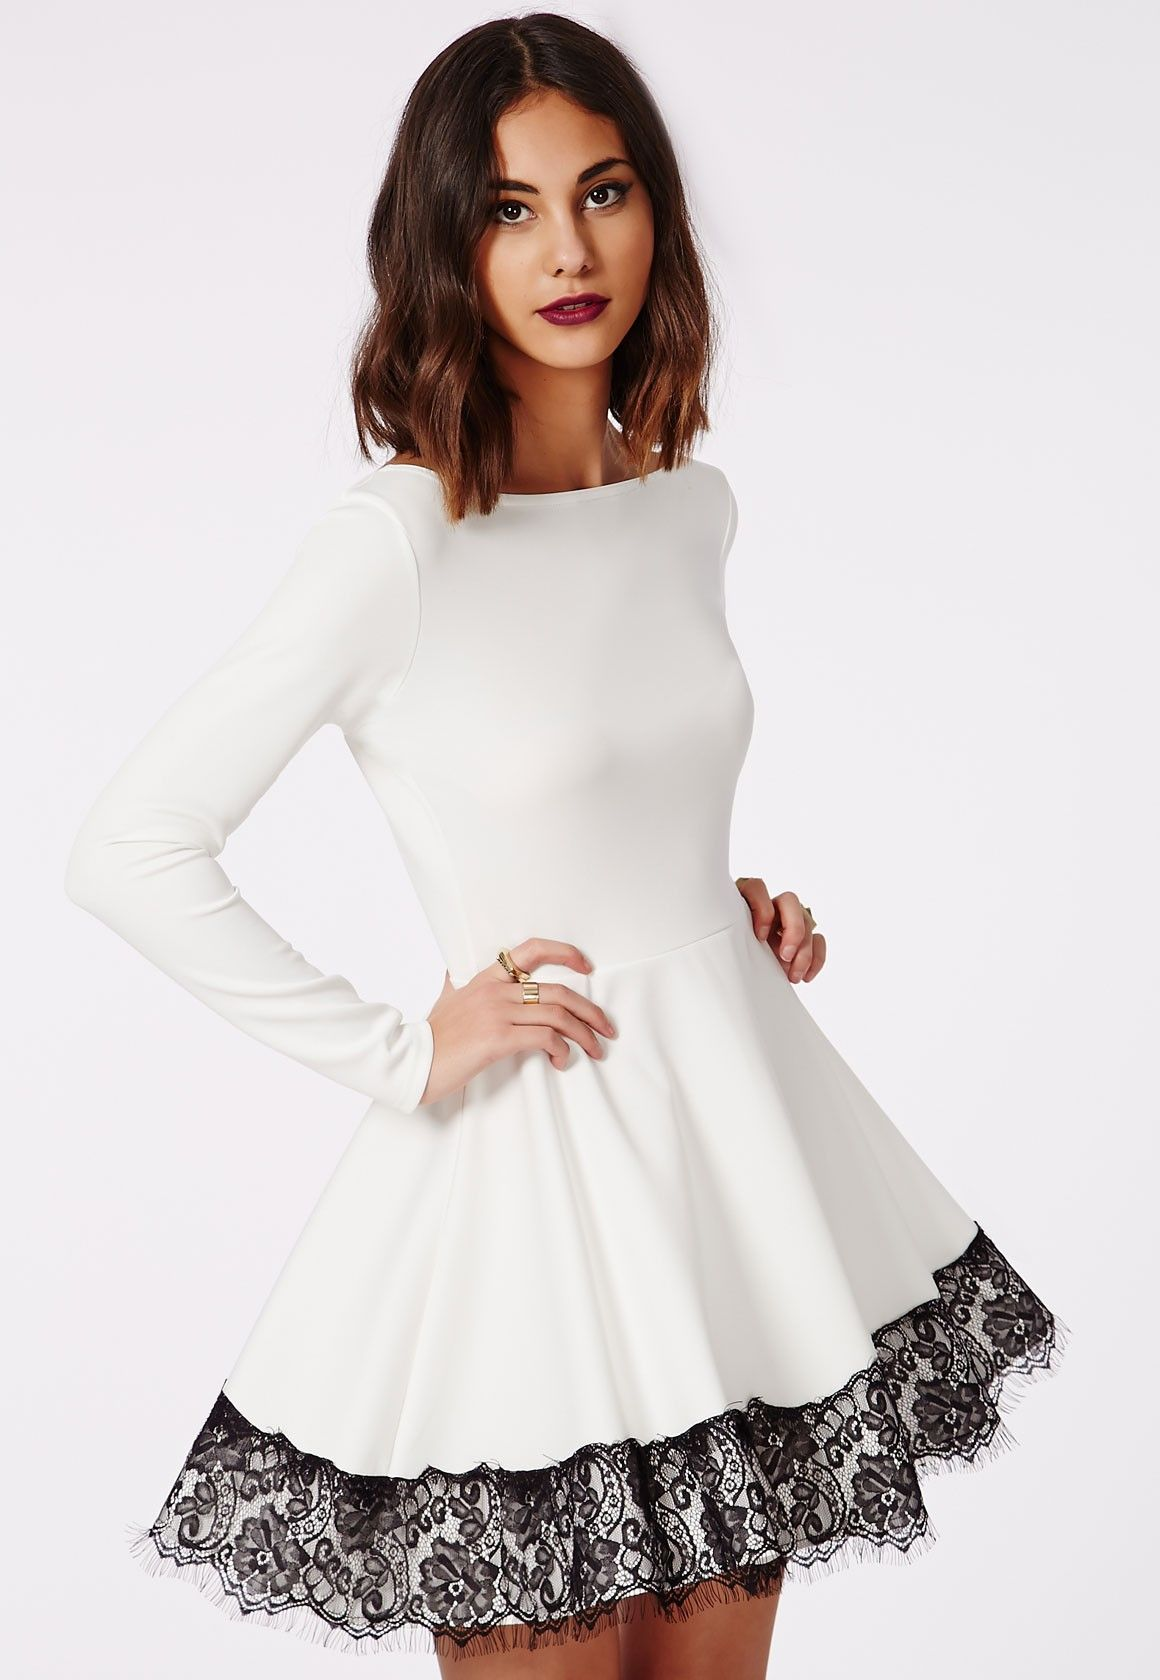 Plombier Hem 11 76 Dress In Black And White Fashion For Women